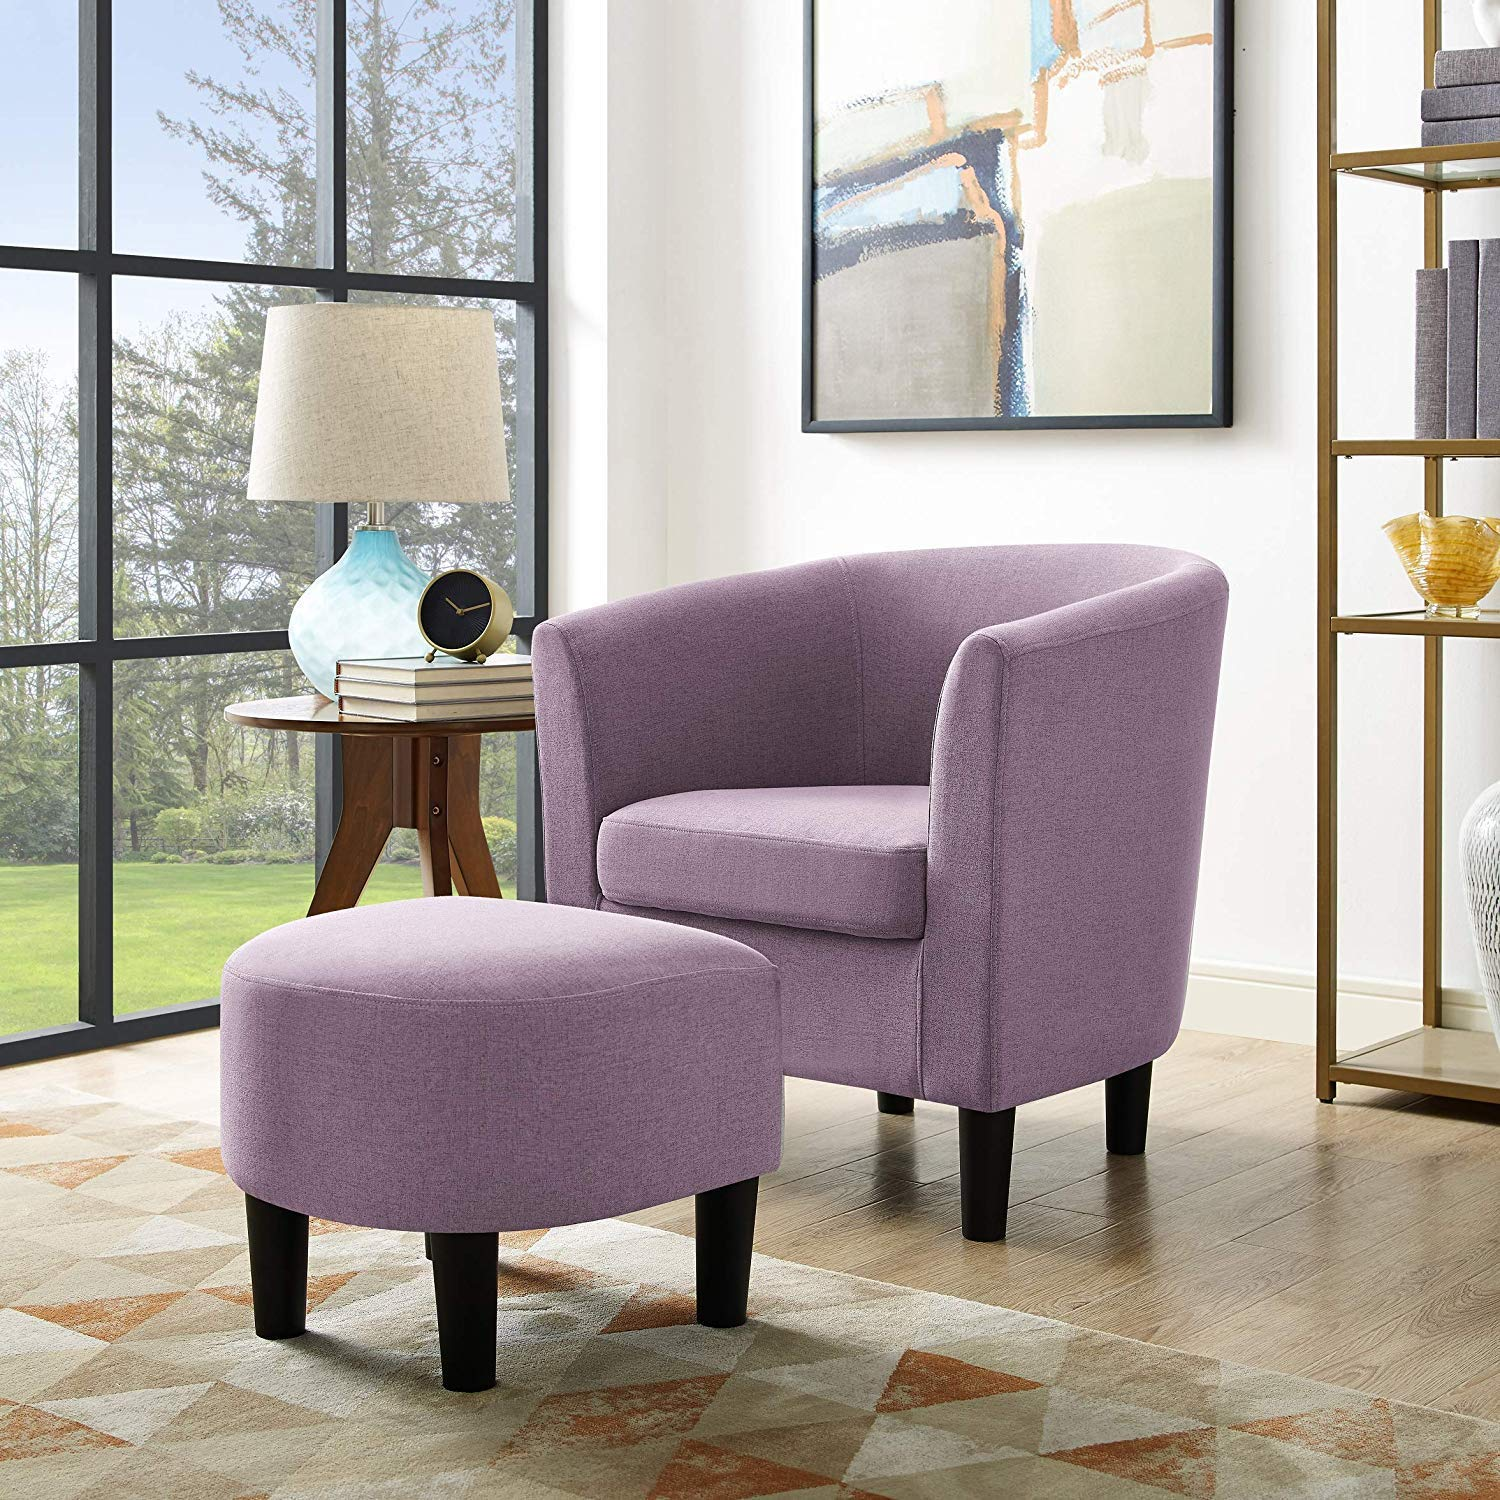 Amazon com bridge modern accent chair linen fabric arm chair upholstered single sofa chair with ottoman foot rest purple kitchen dining